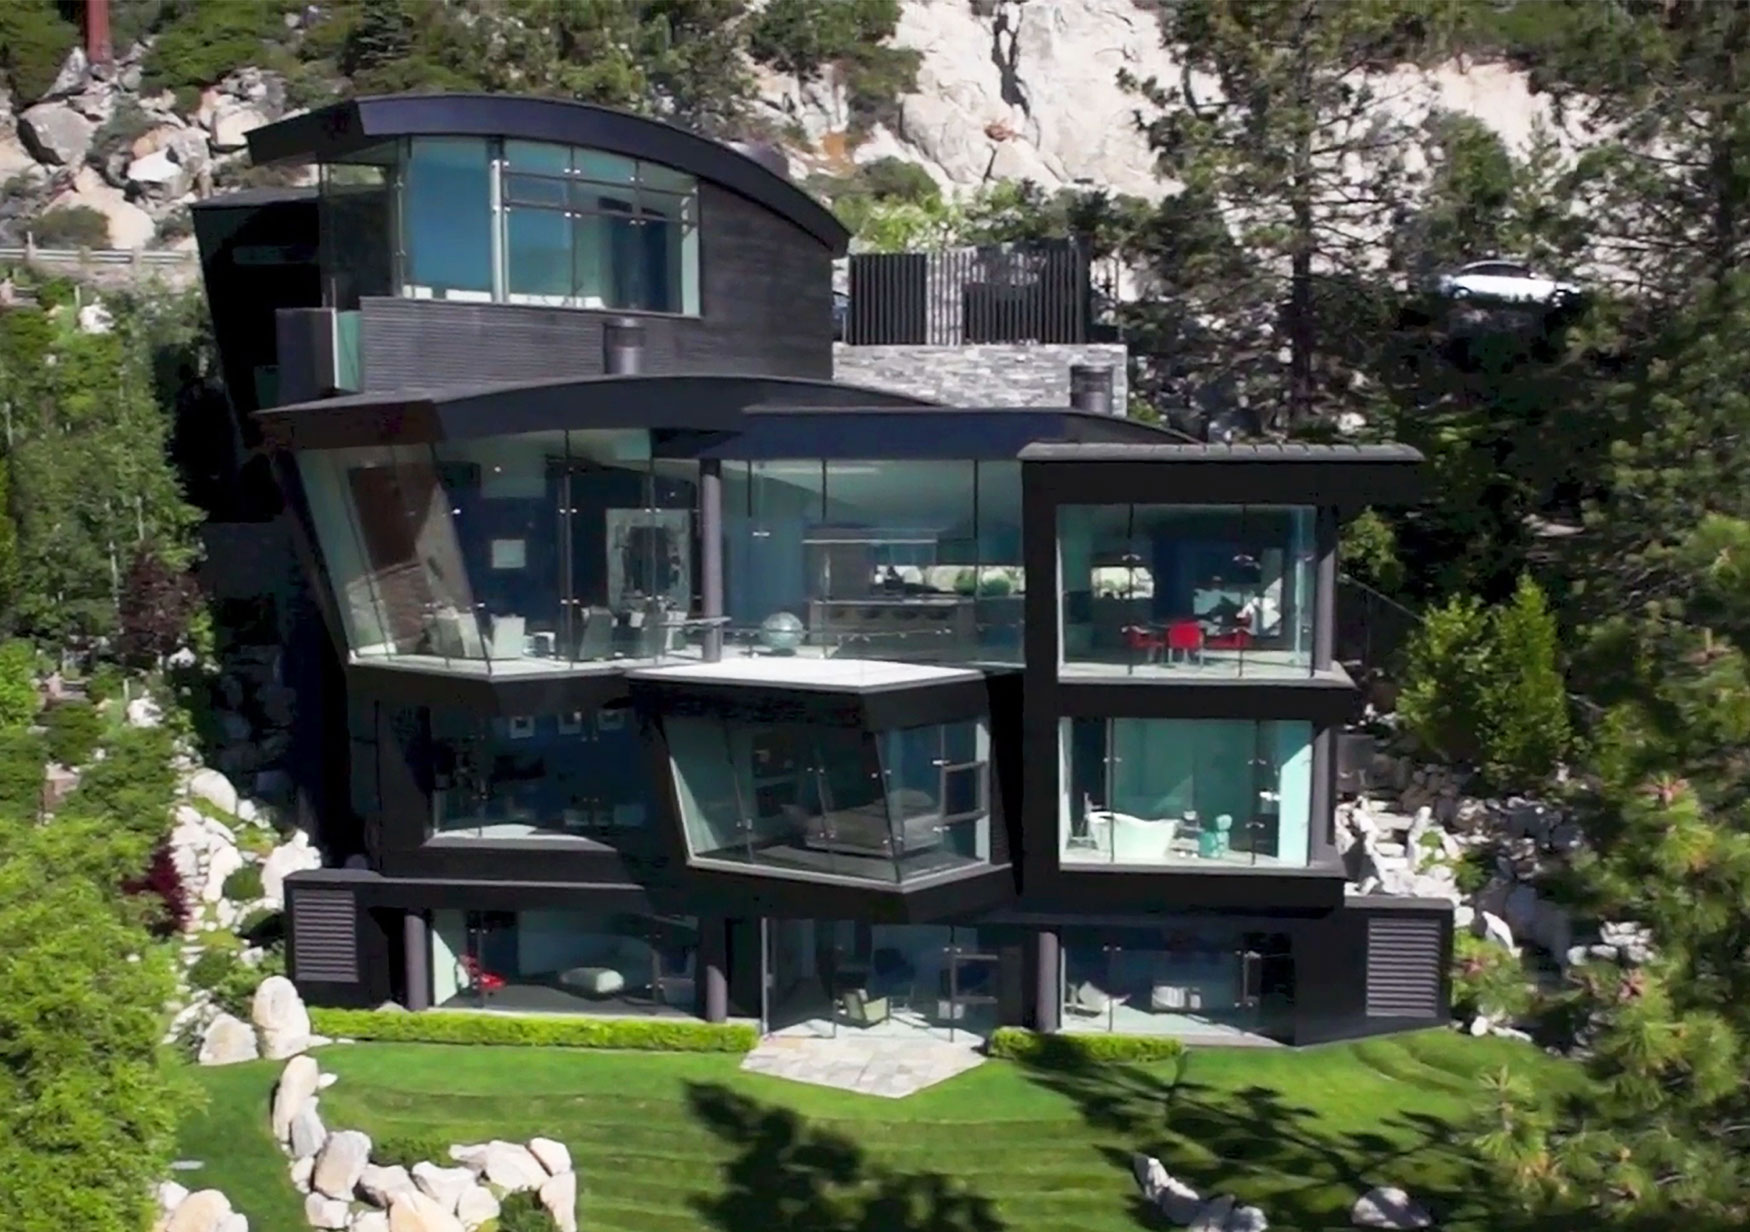 One of the most spectacular waterfront properties in North America, Ski the Future is a triumph of design on the shores of Lake Tahoe.